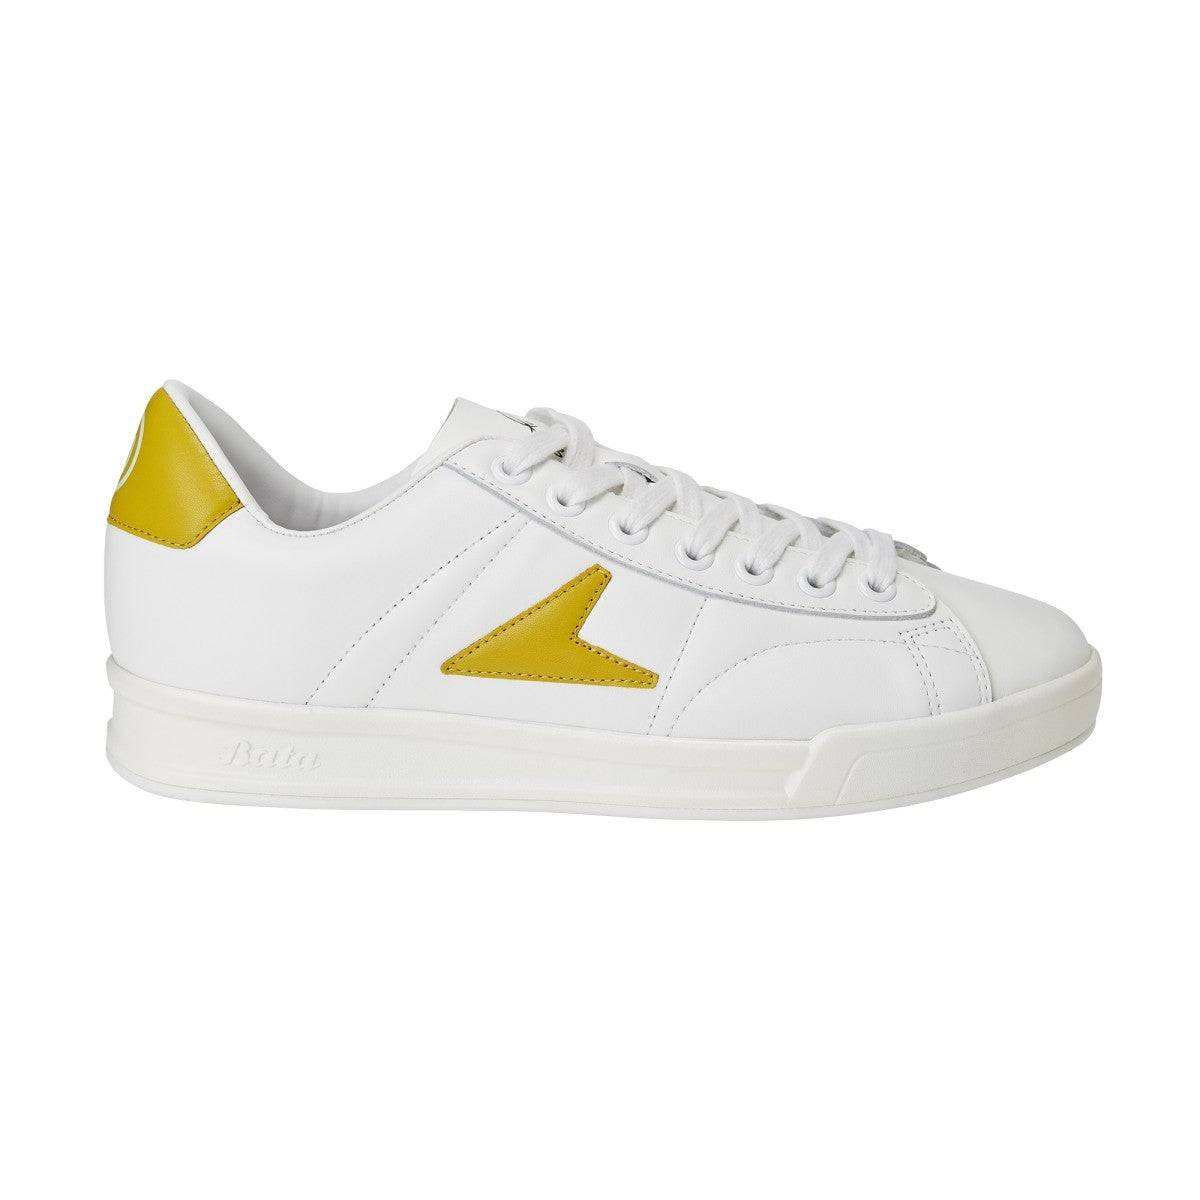 Wilson John Wooden Classic Low Top Shoes in White / Mustard Yellow - Size: 10.5 M  - Unisex - White/Mustard Yellow - Size: 10.5 M